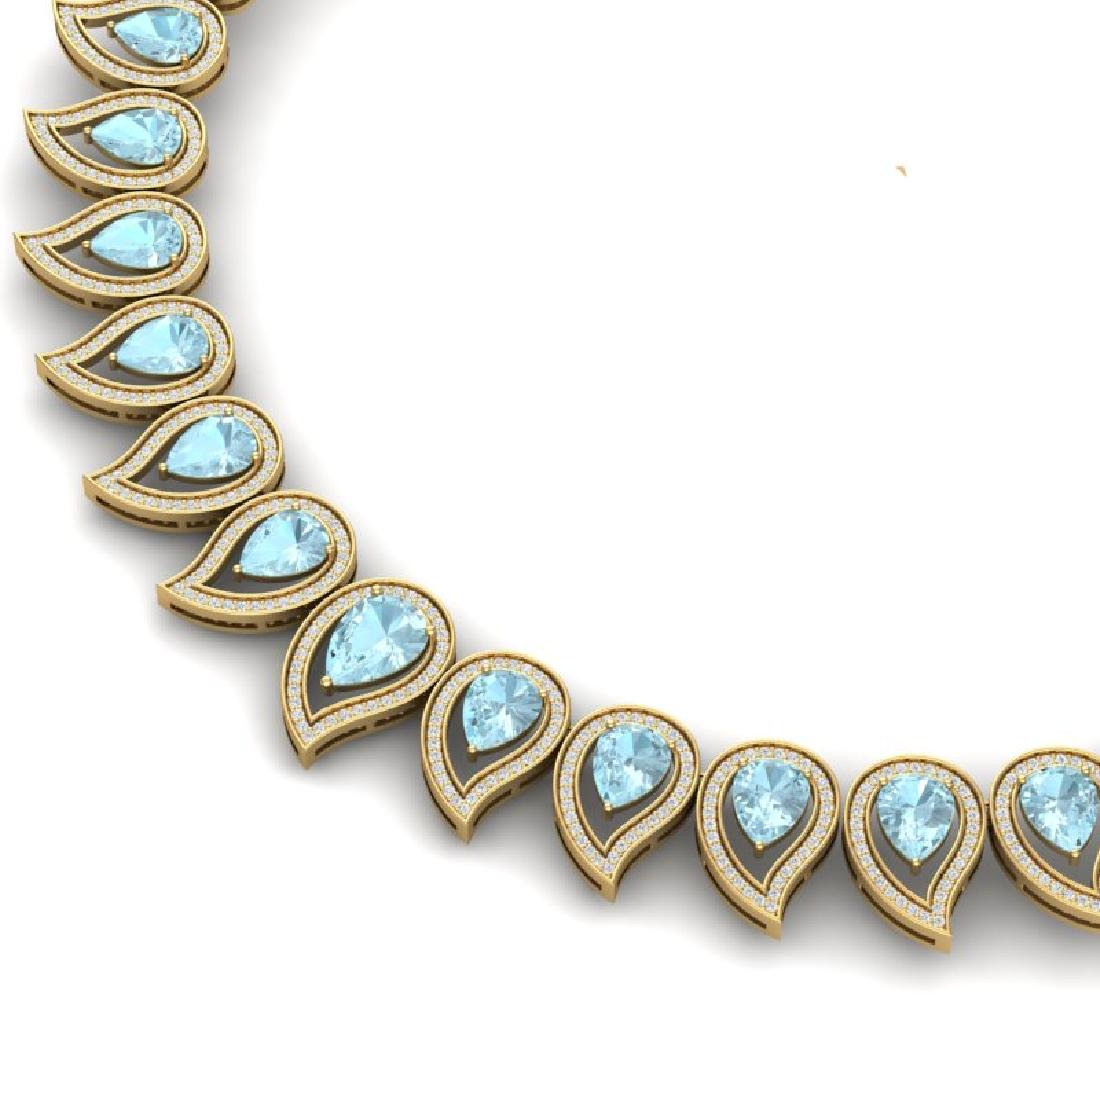 34.96 CTW Royalty Sky Topaz & VS Diamond Necklace 18K - 2